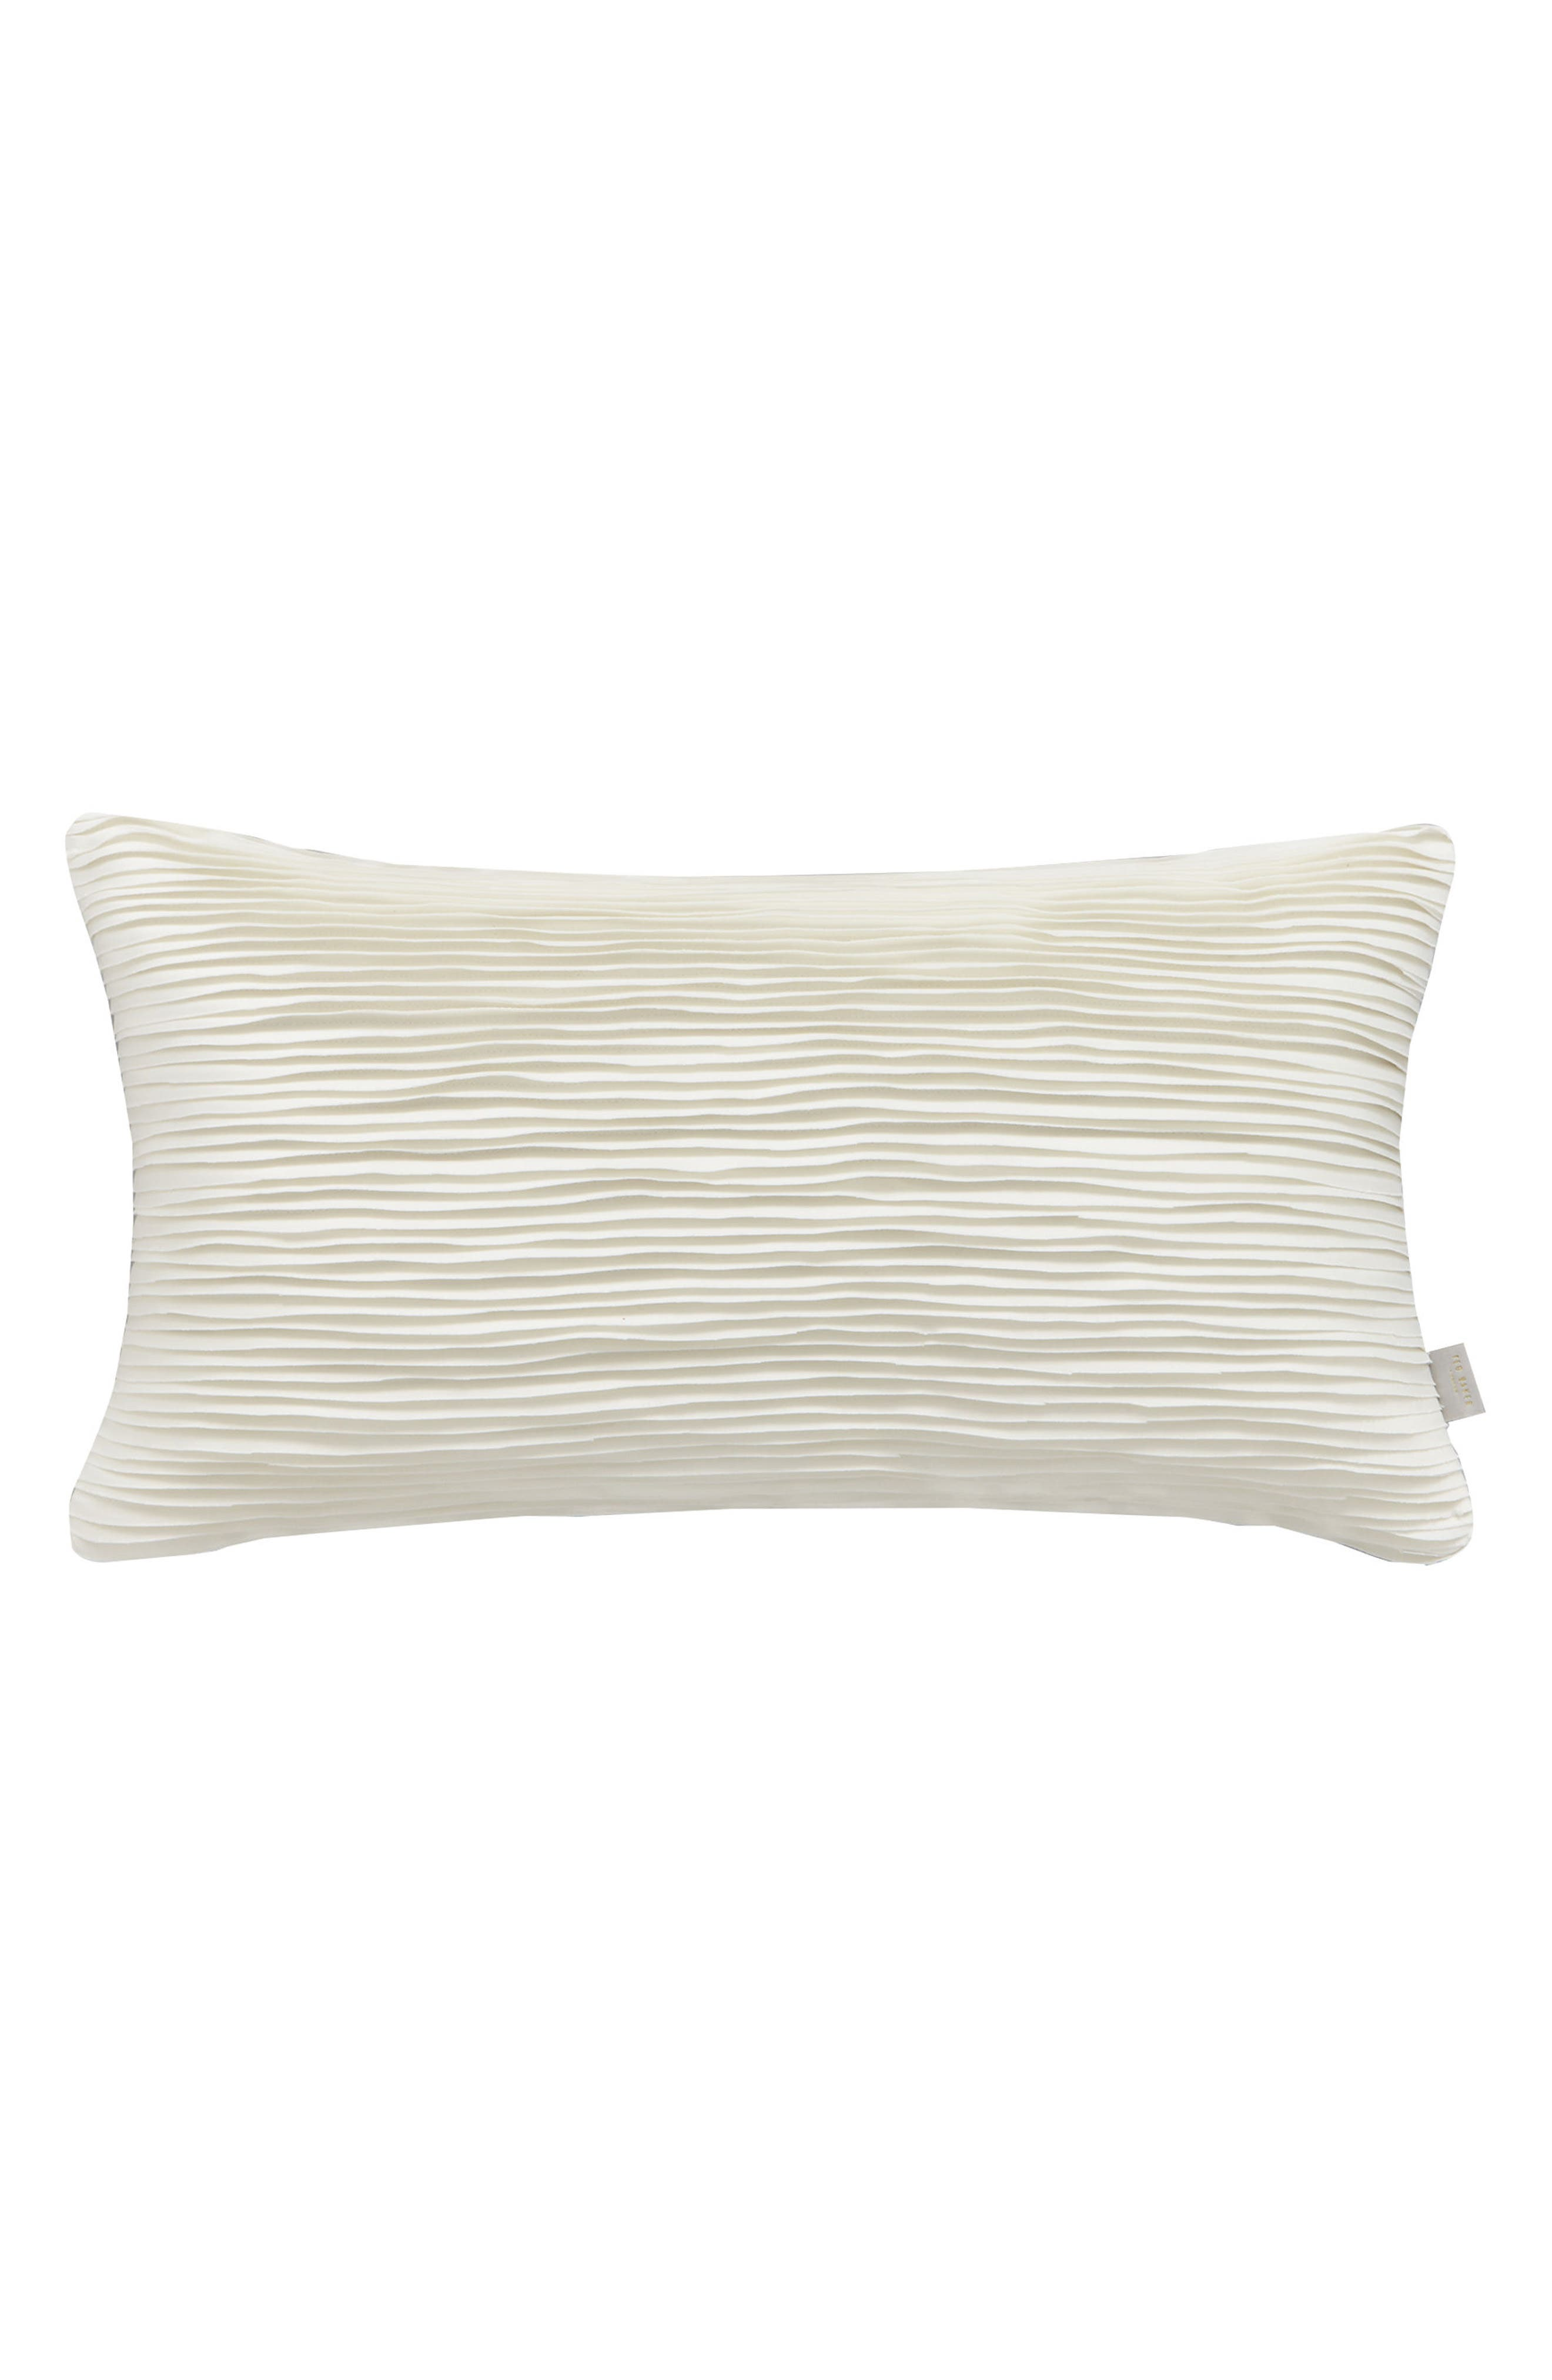 Frayed Accent Pillow,                         Main,                         color, 900